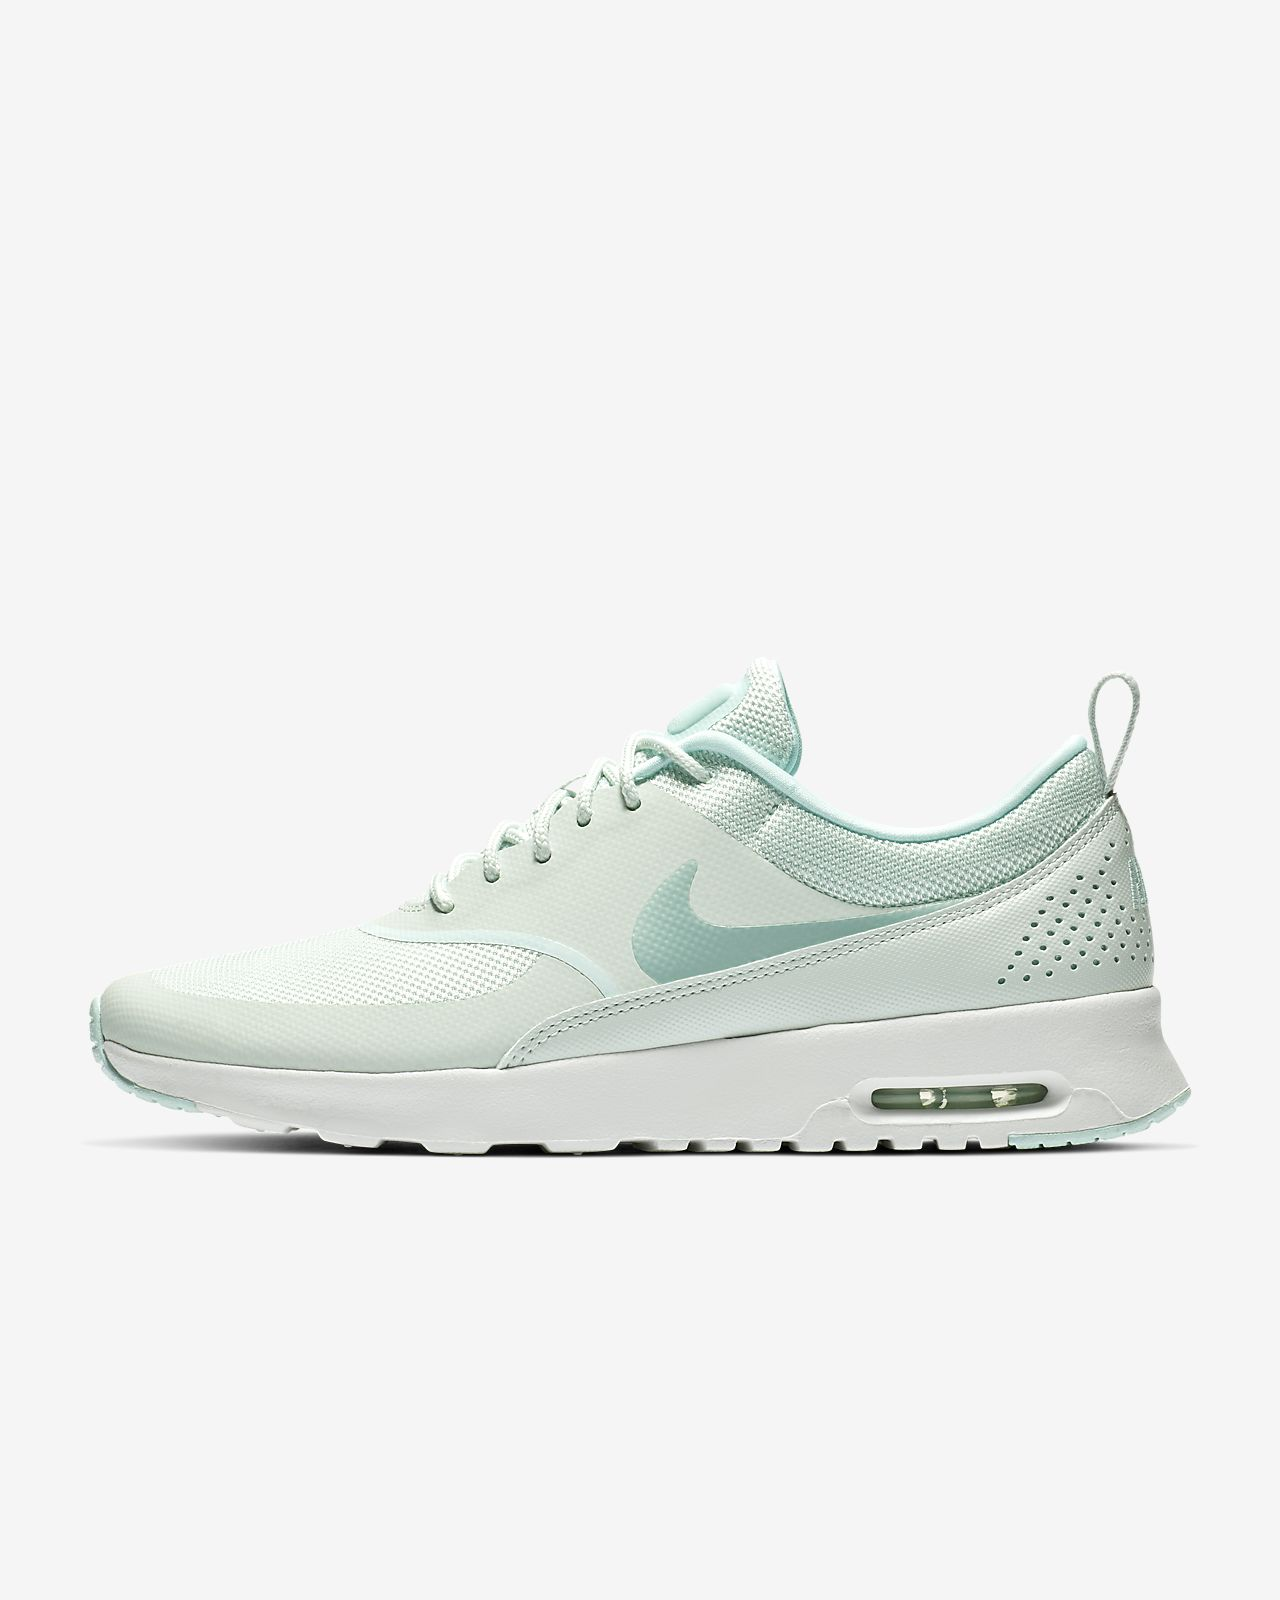 uk availability 49f8d 10b83 ... Nike Air Max Thea Damenschuh